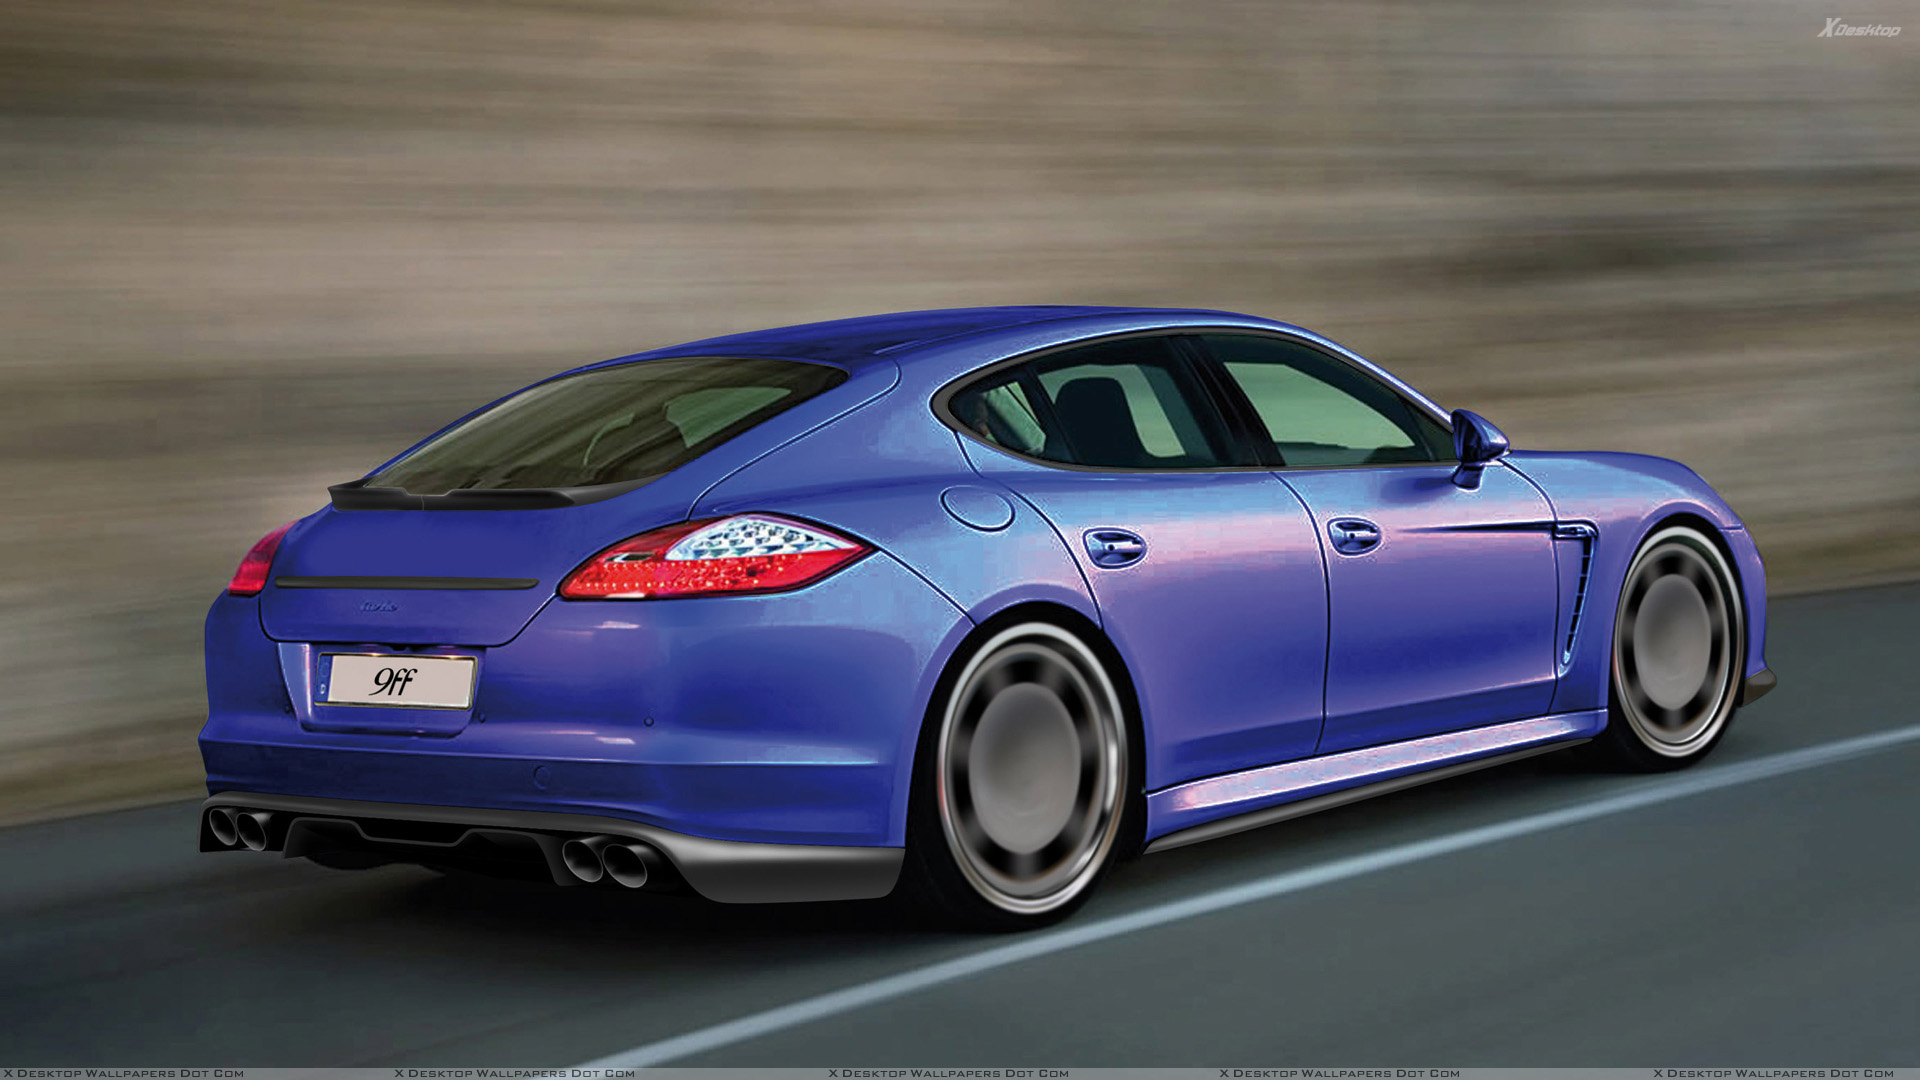 Porsche Panamera Wallpapers Photos Images In Hd